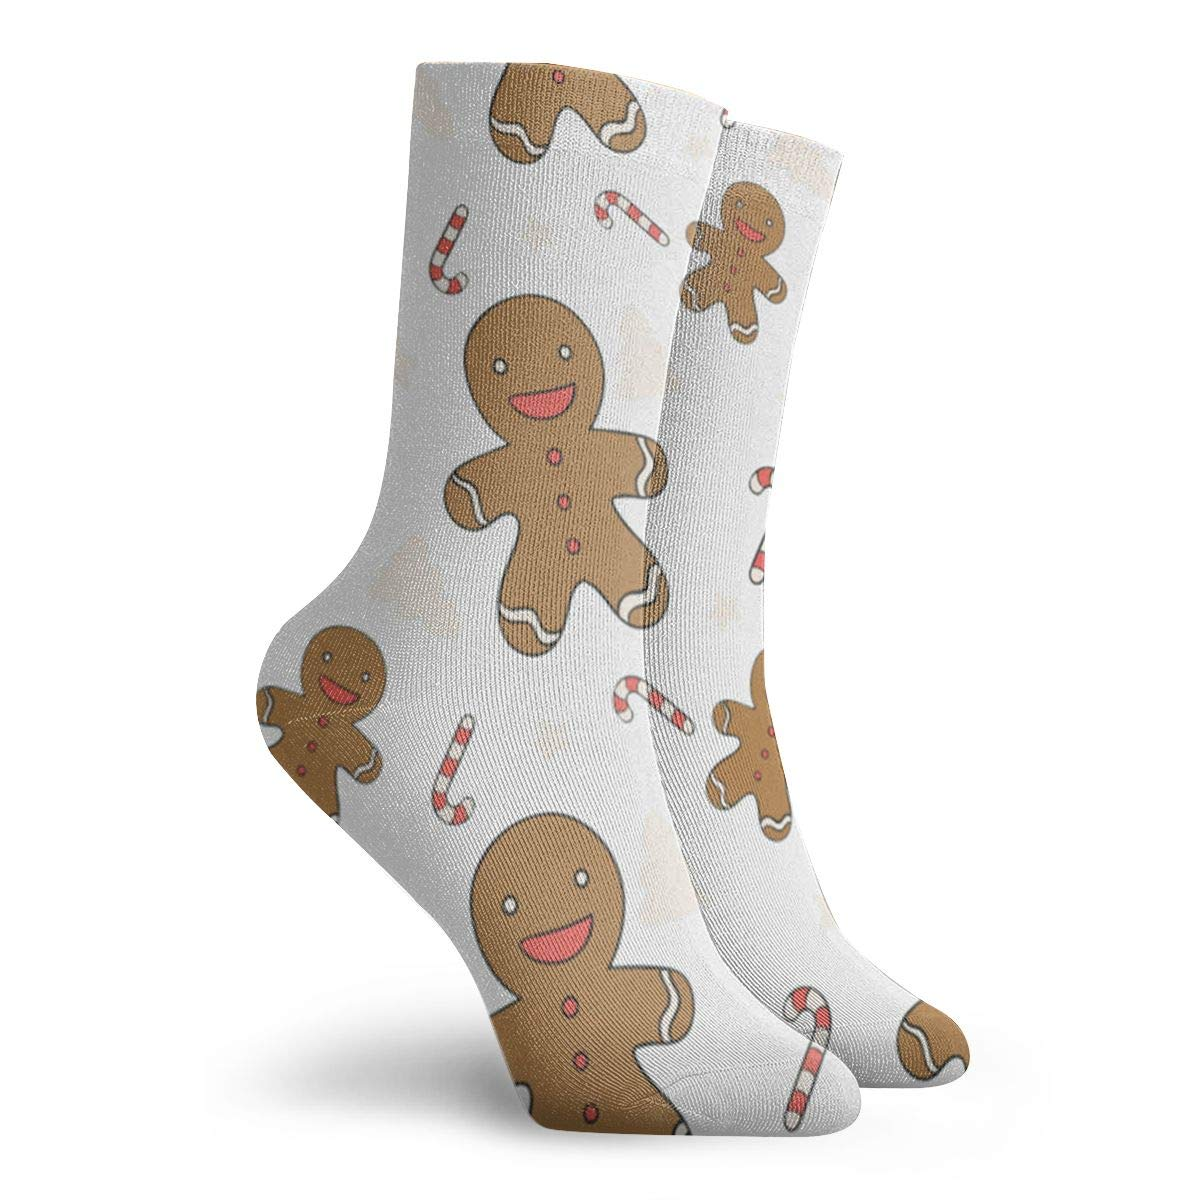 Gingerbread Man Pattern Unisex Funny Casual Crew Socks Athletic Socks For Boys Girls Kids Teenagers